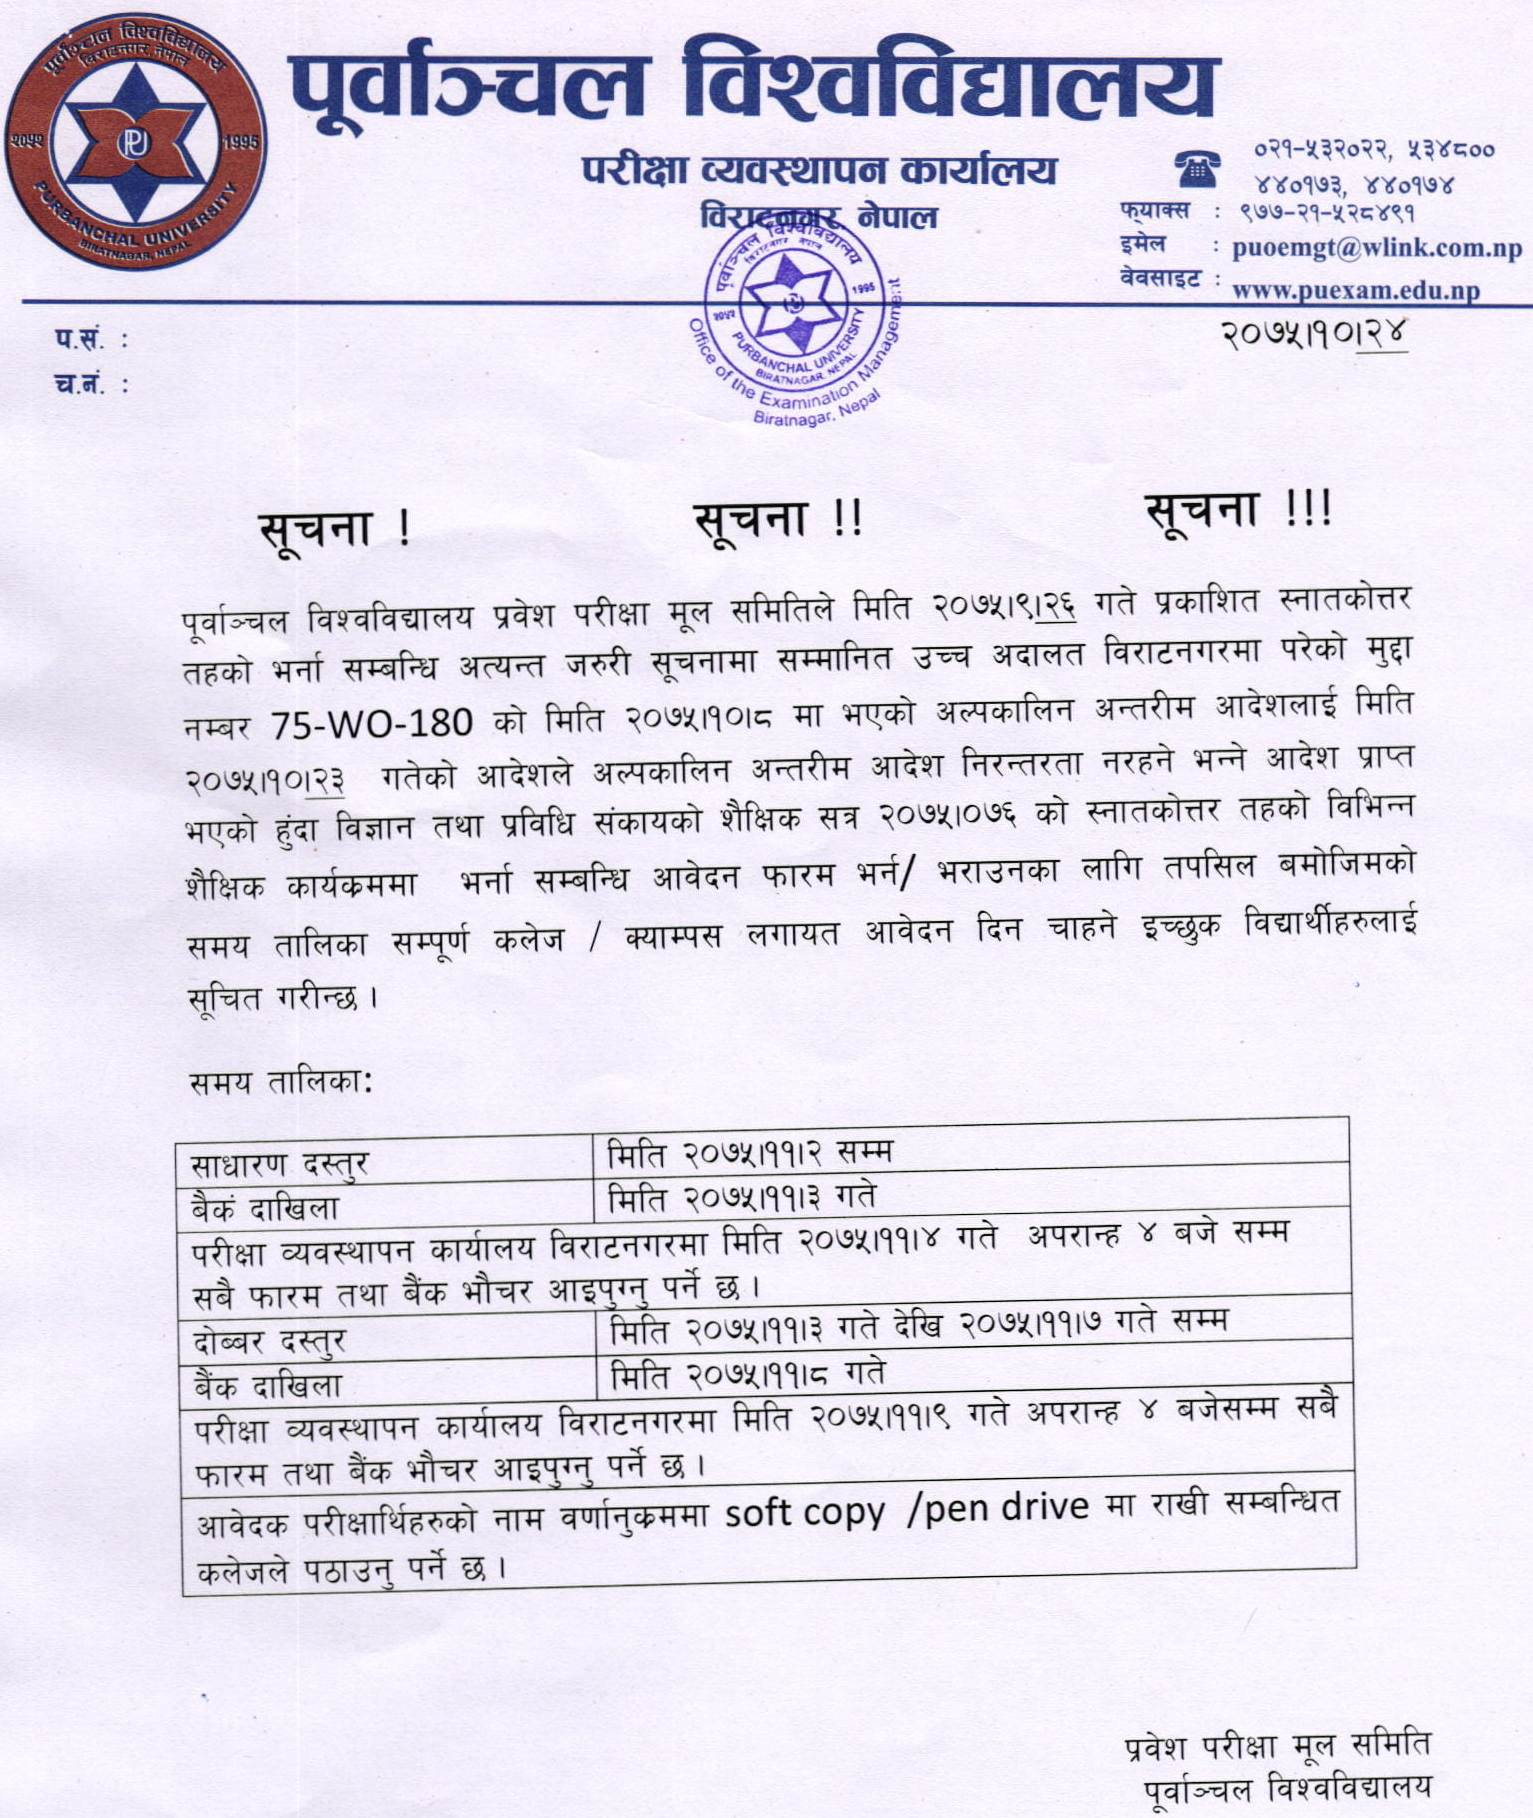 Entrance Exam Date And Exam Centers For Masters Level (M